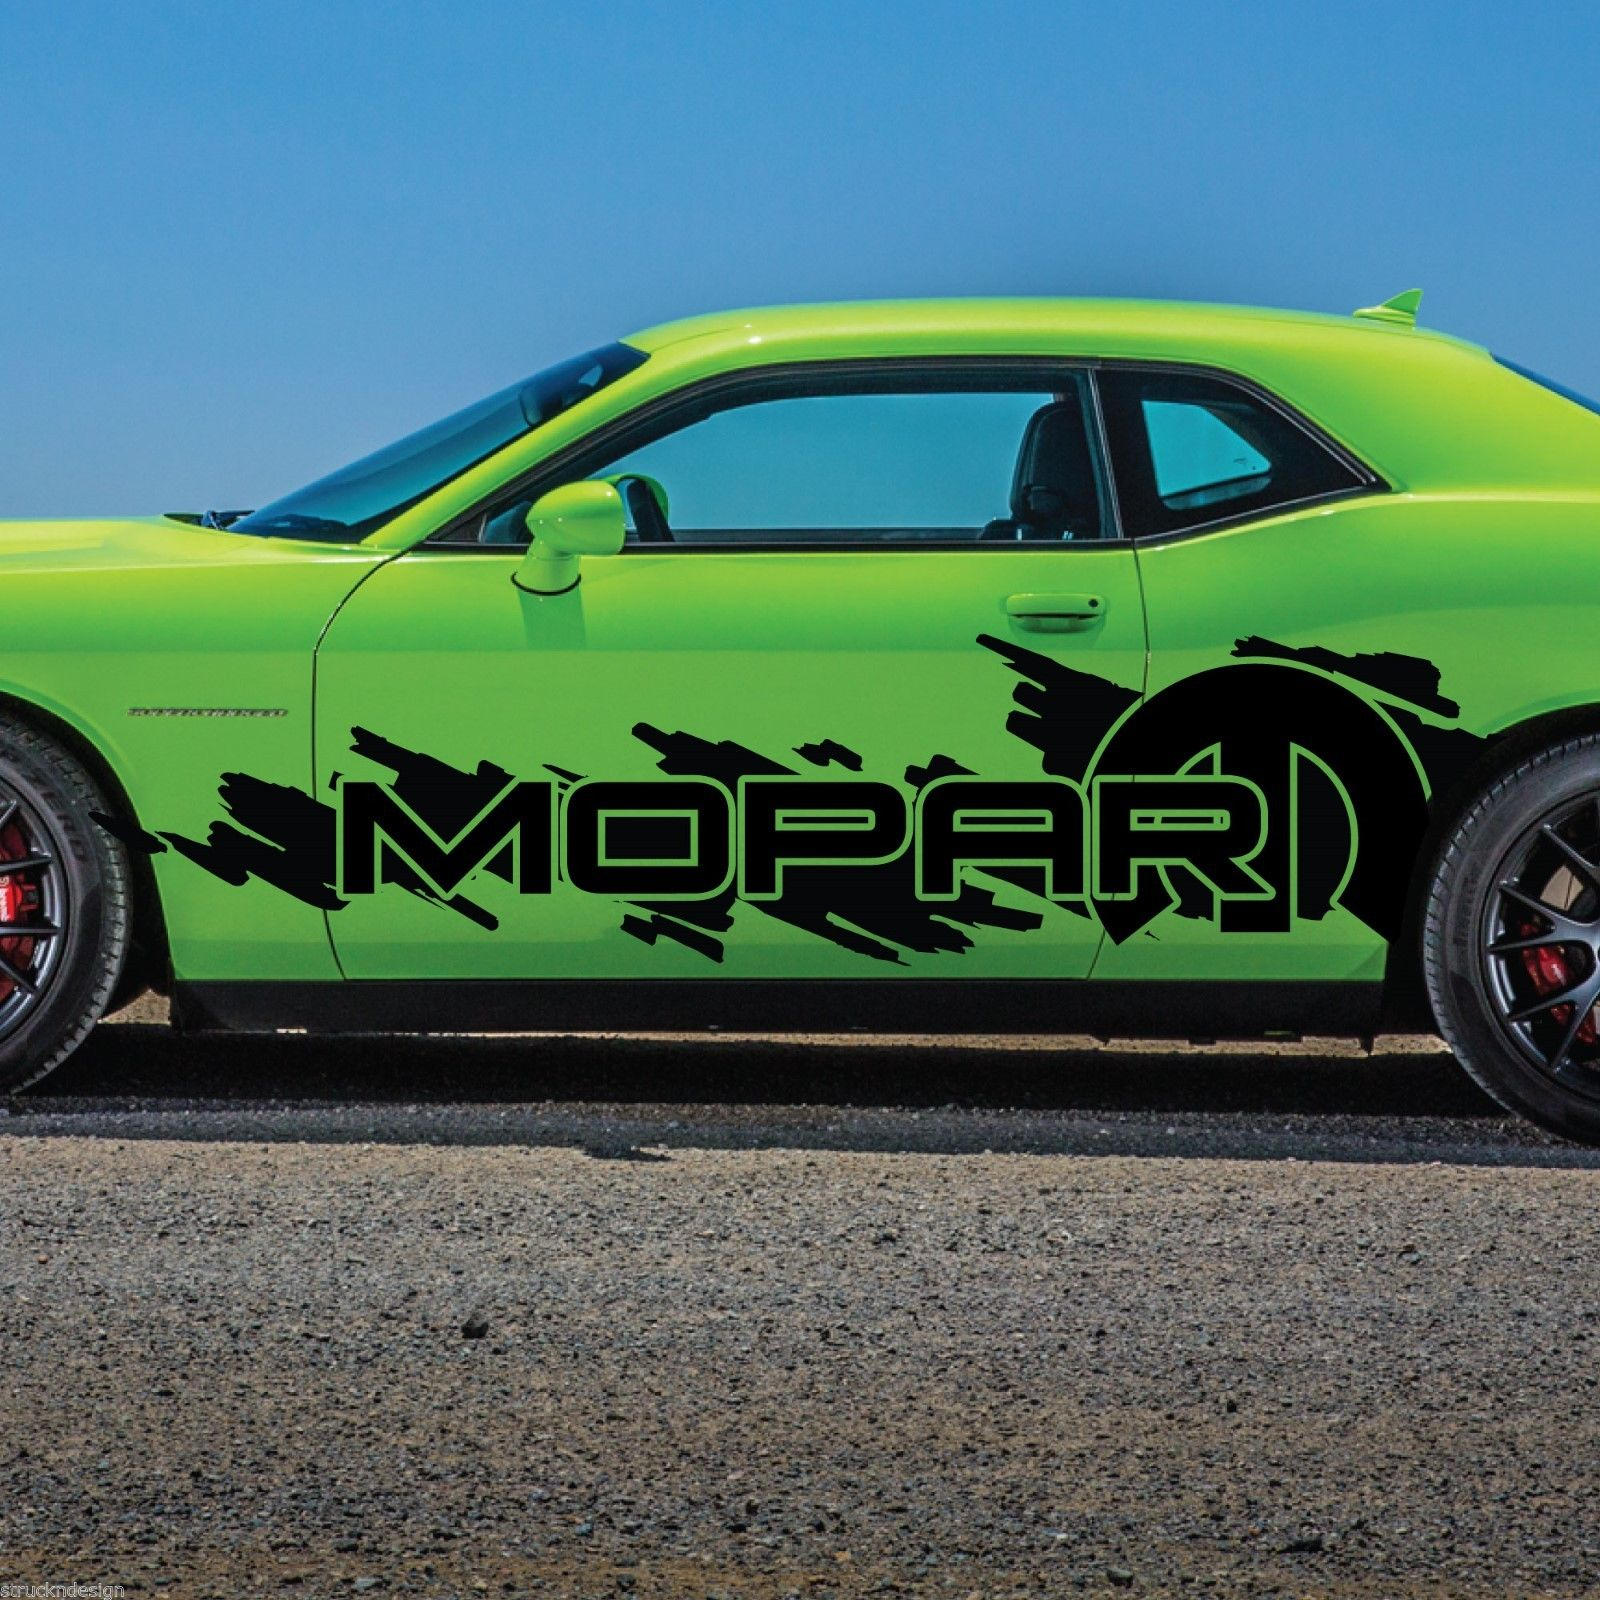 Product dodge challenger mopar splash grunge logo vinyl decal graphic camo